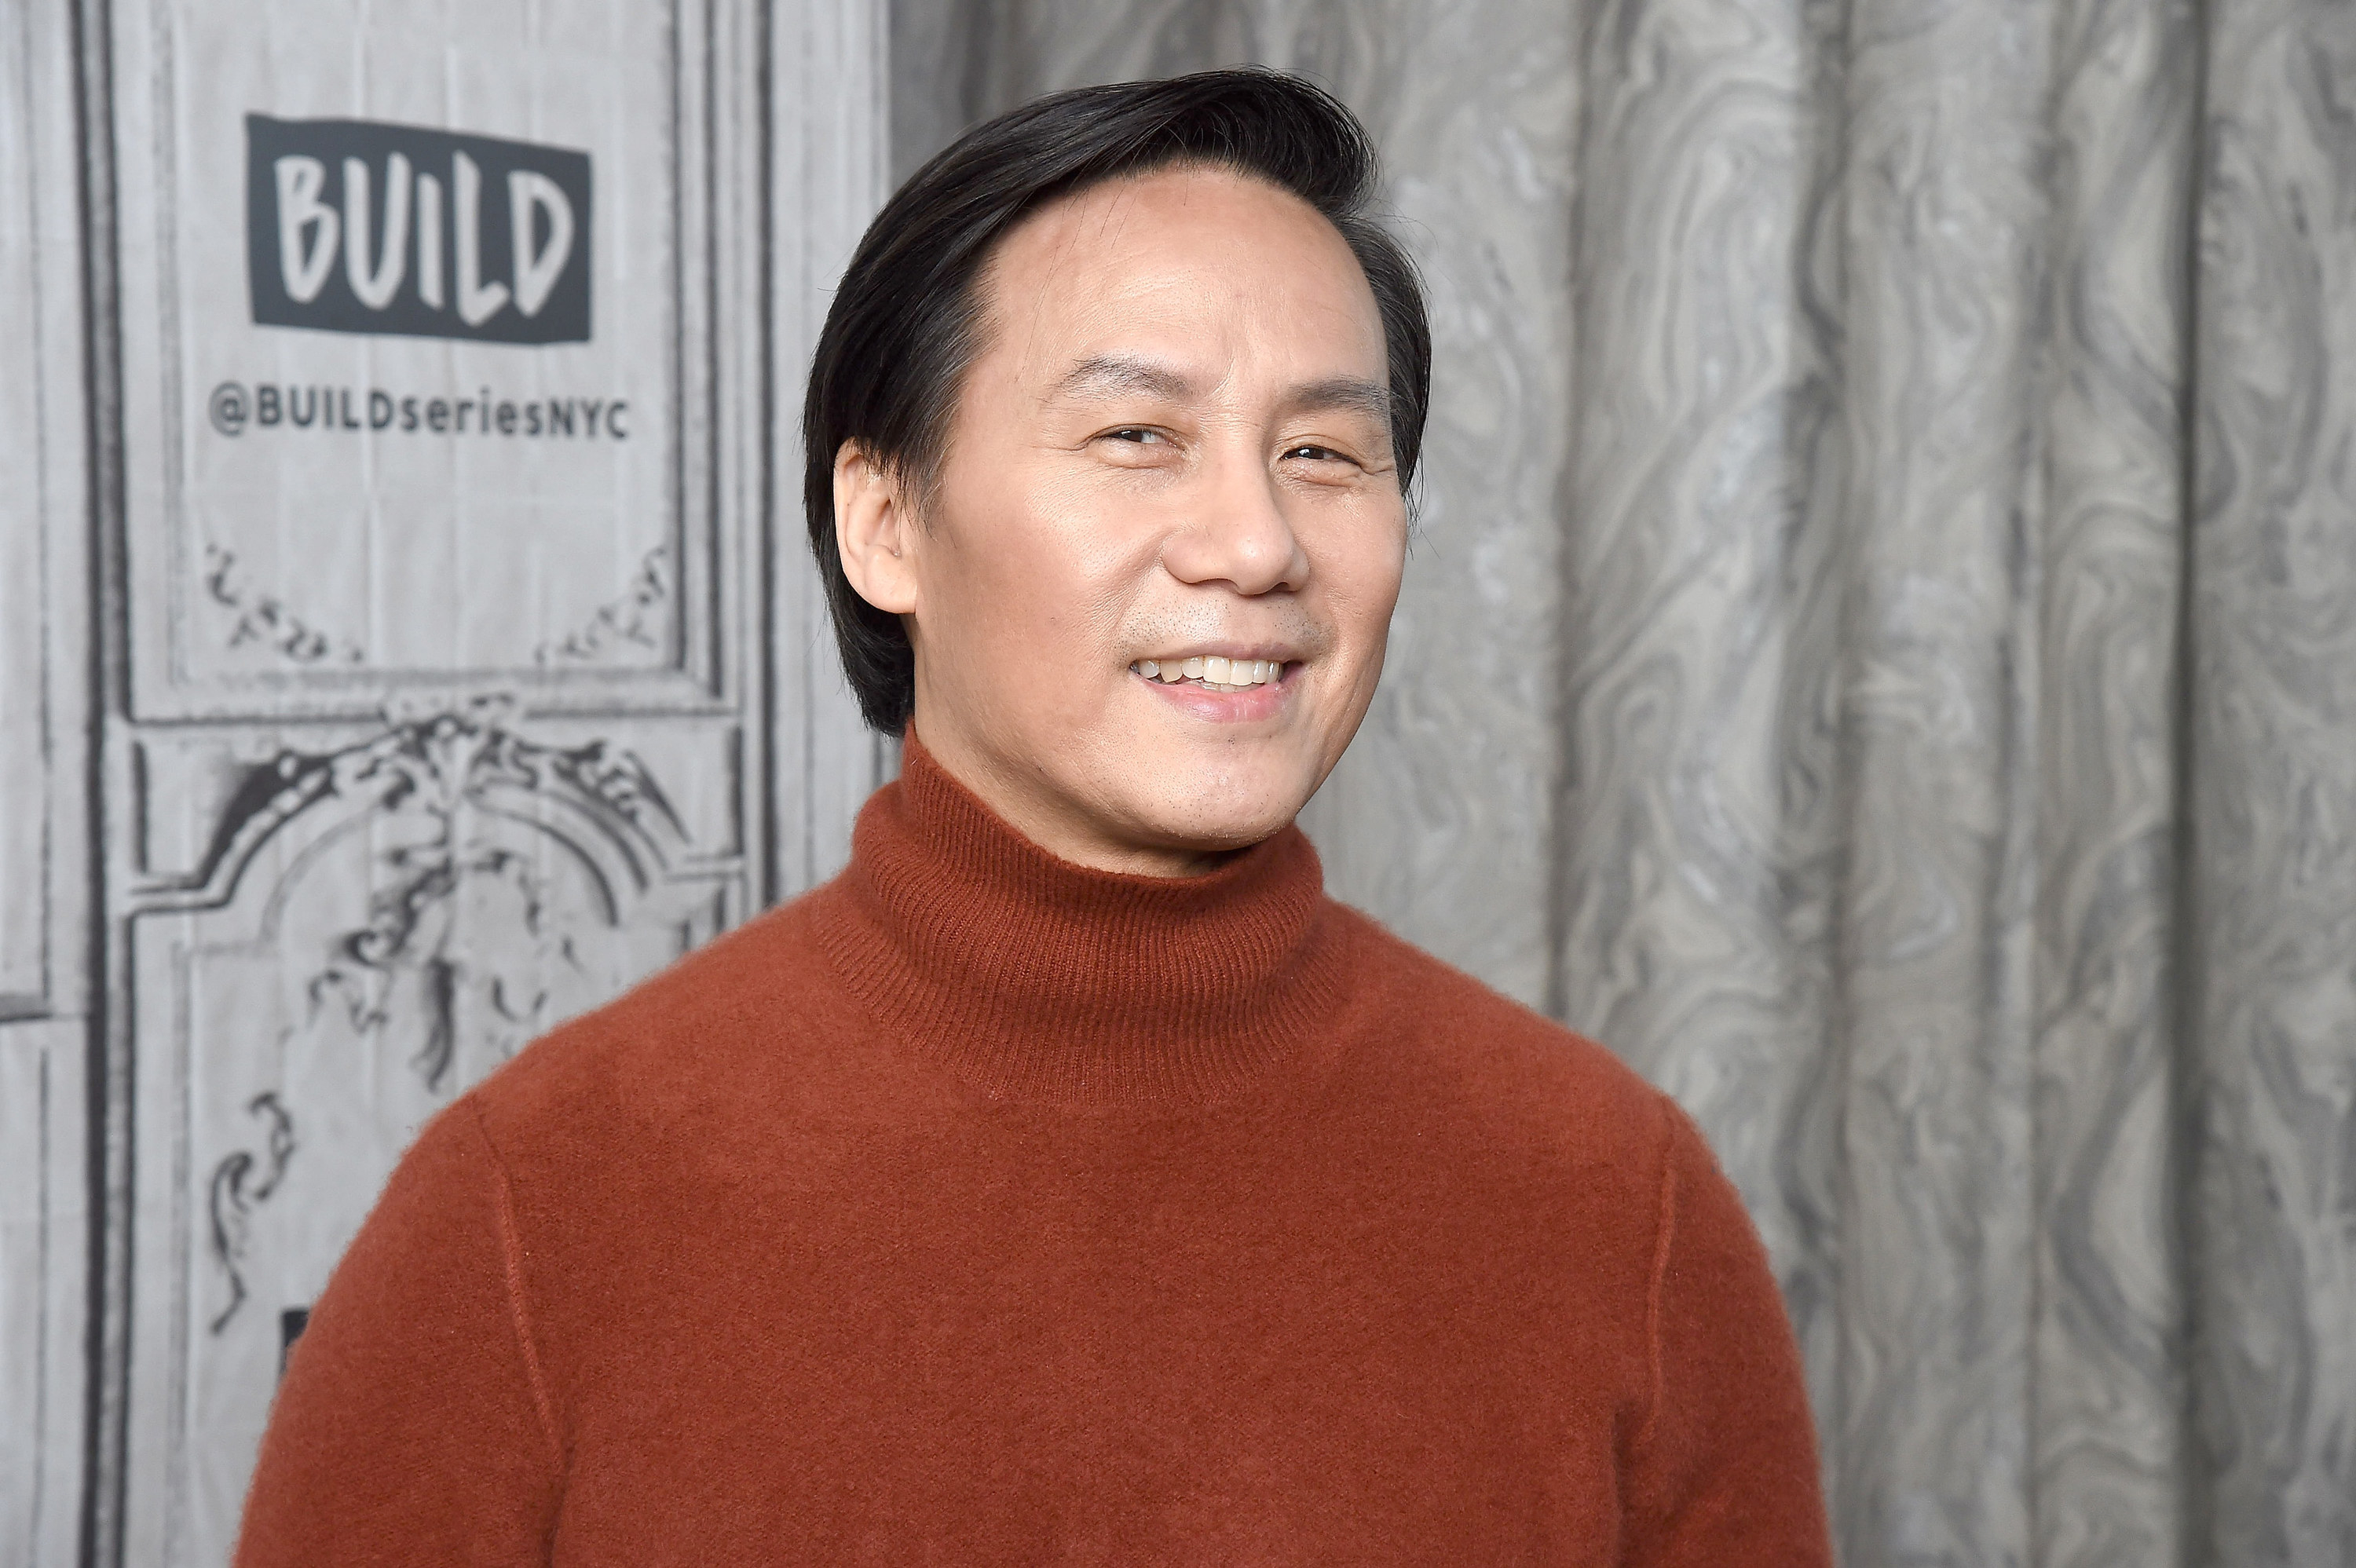 BD Wong, in a turtleneck, smiles for the camera